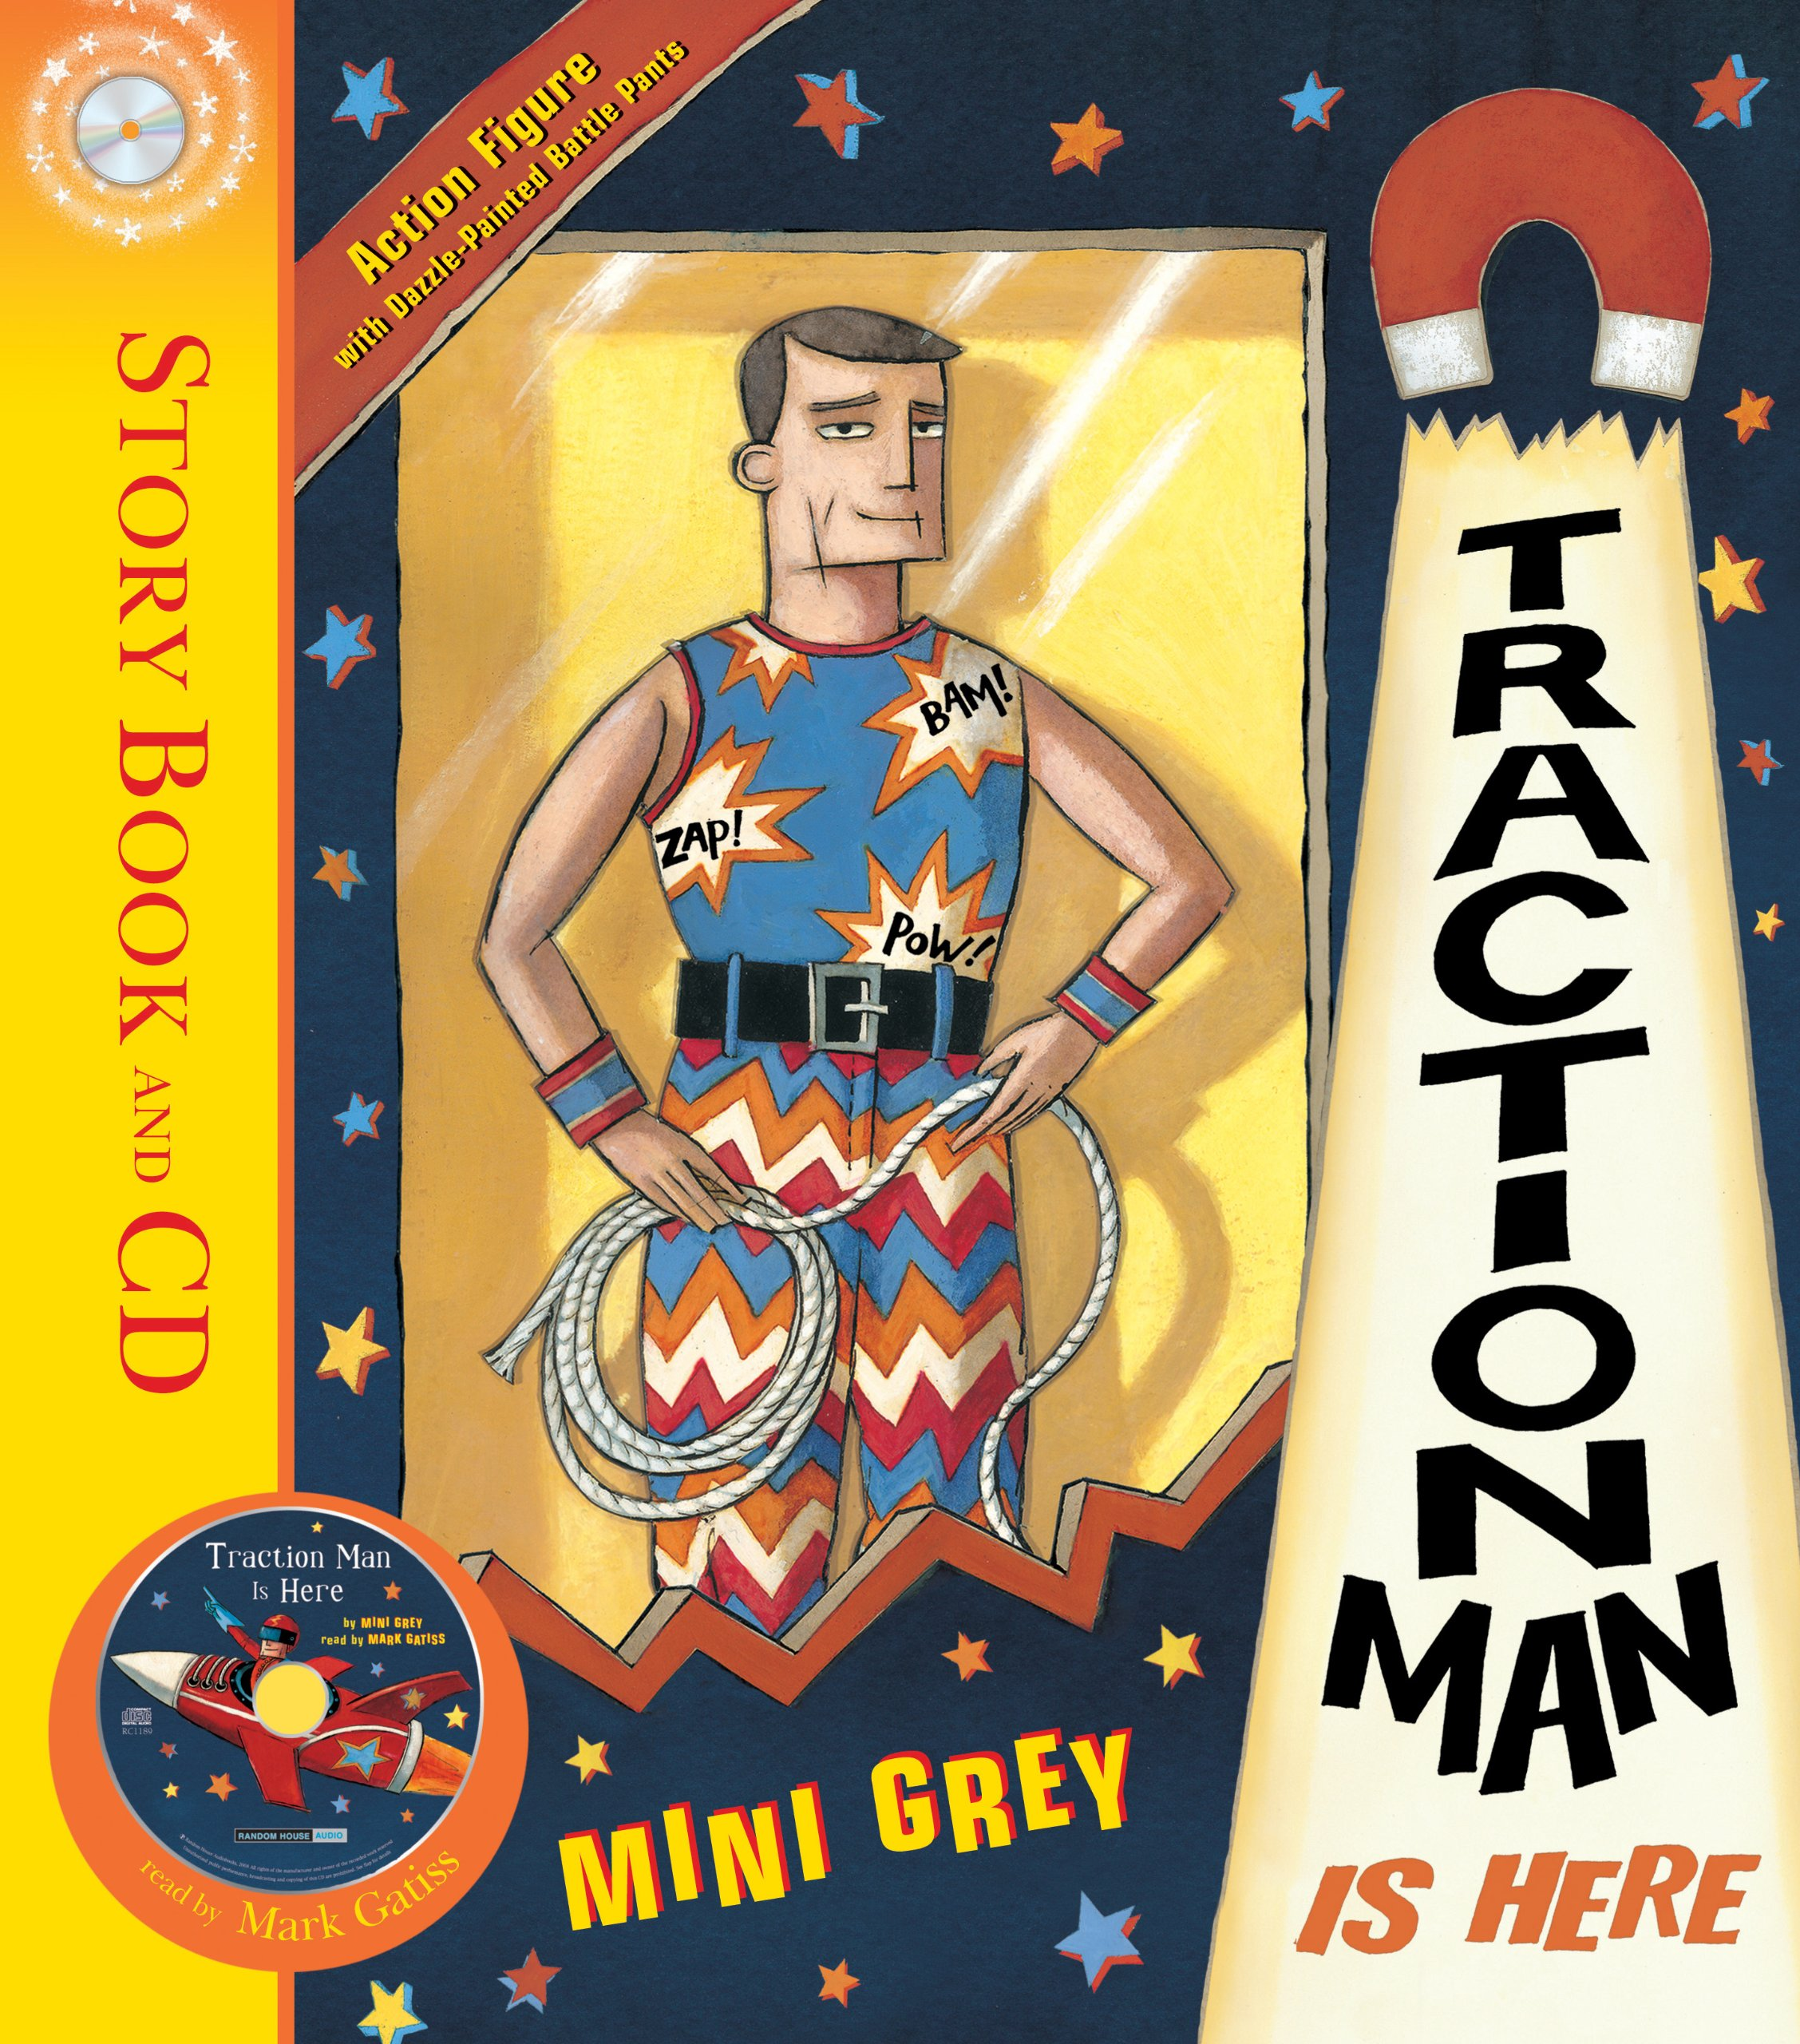 Traction Man Is Here: 1: Amazon.co.uk: Grey, Mini: 9781862306400: Books